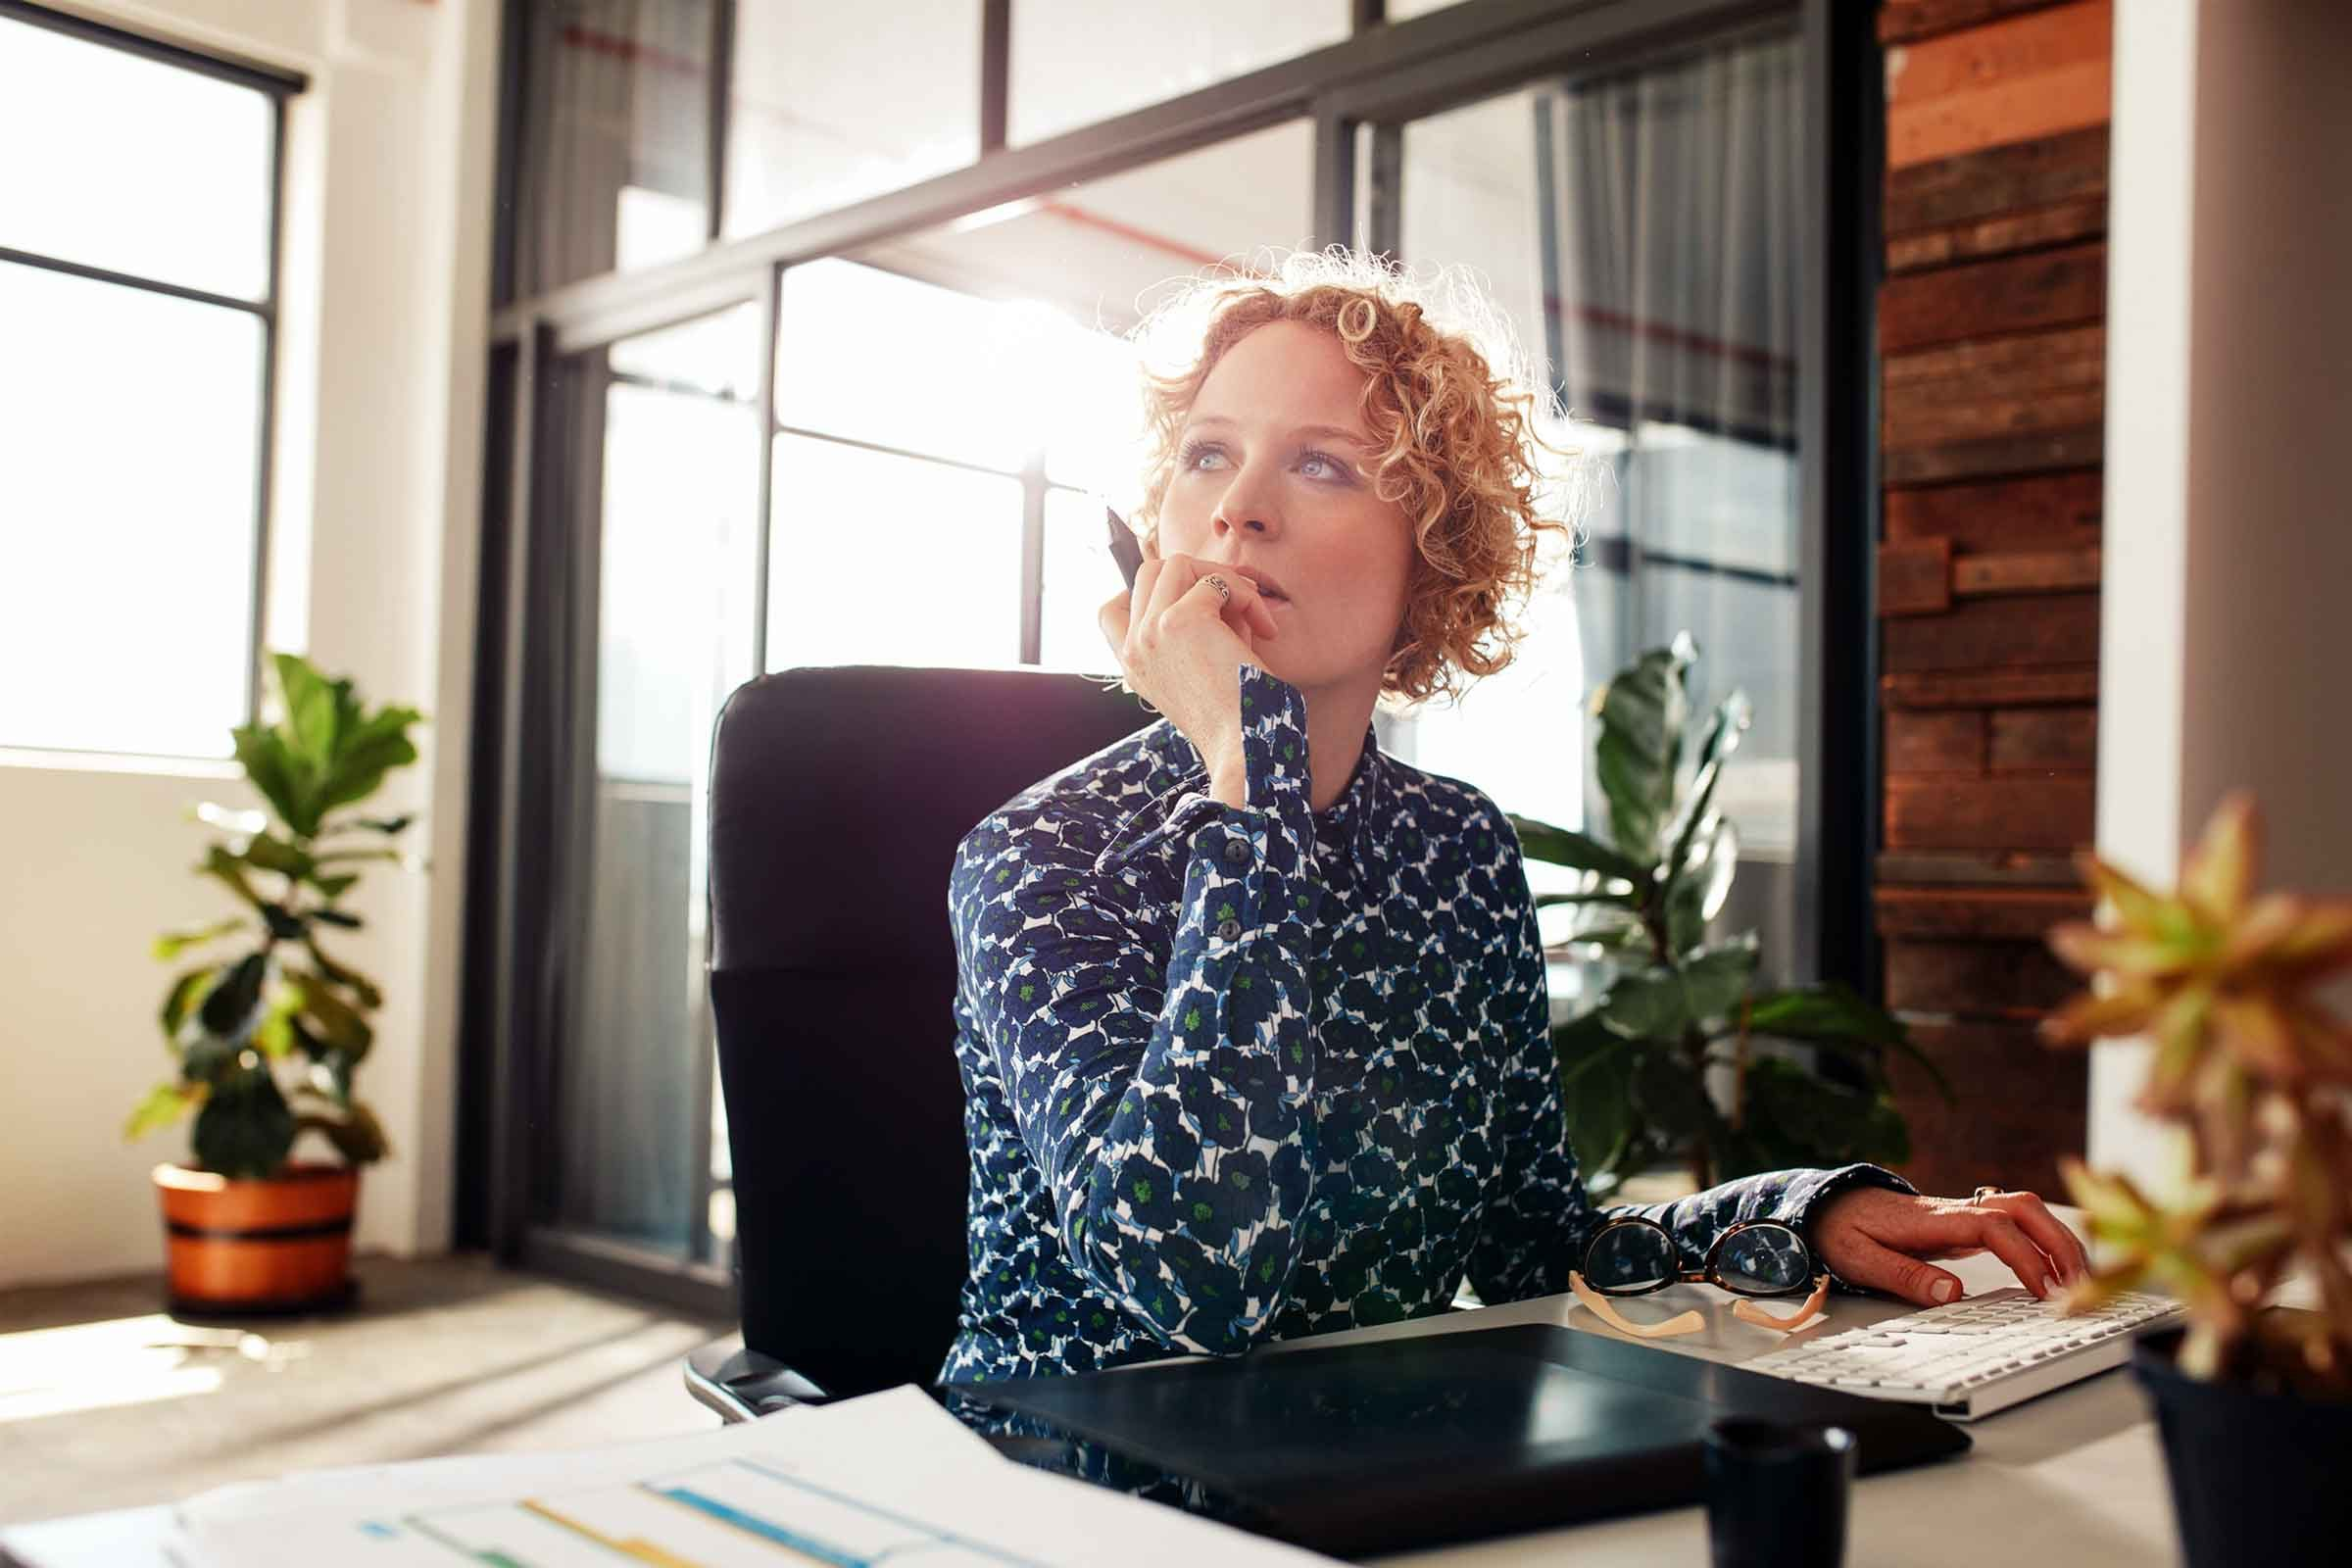 work burnout 7 symptoms work is too stressful reader s digest more tips for beating work burnout